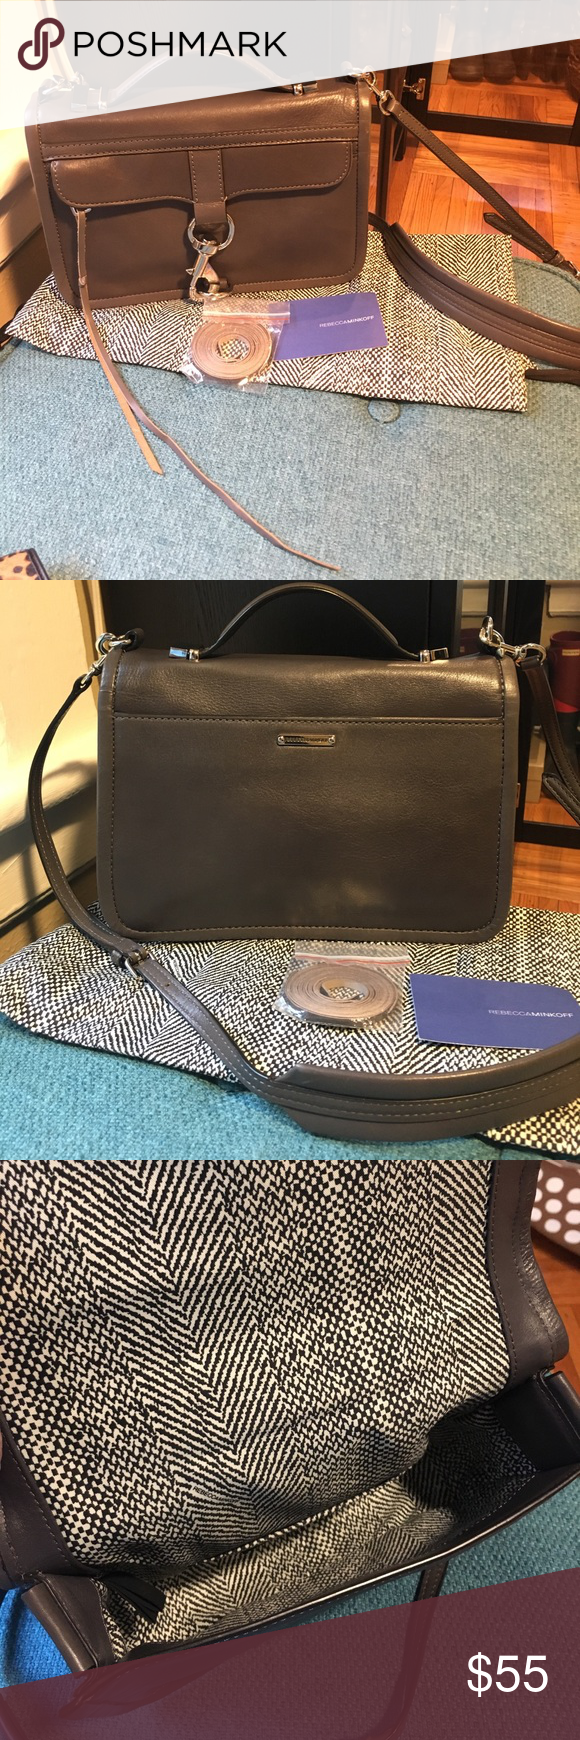 EUC Rebecca Minkoff Bowery Bag Used a handful of times only. Really cute Satchel style crossbody. Strap is detachable. Comes with dustbag and extra replacement tassels. Rebecca Minkoff Bags Crossbody Bags